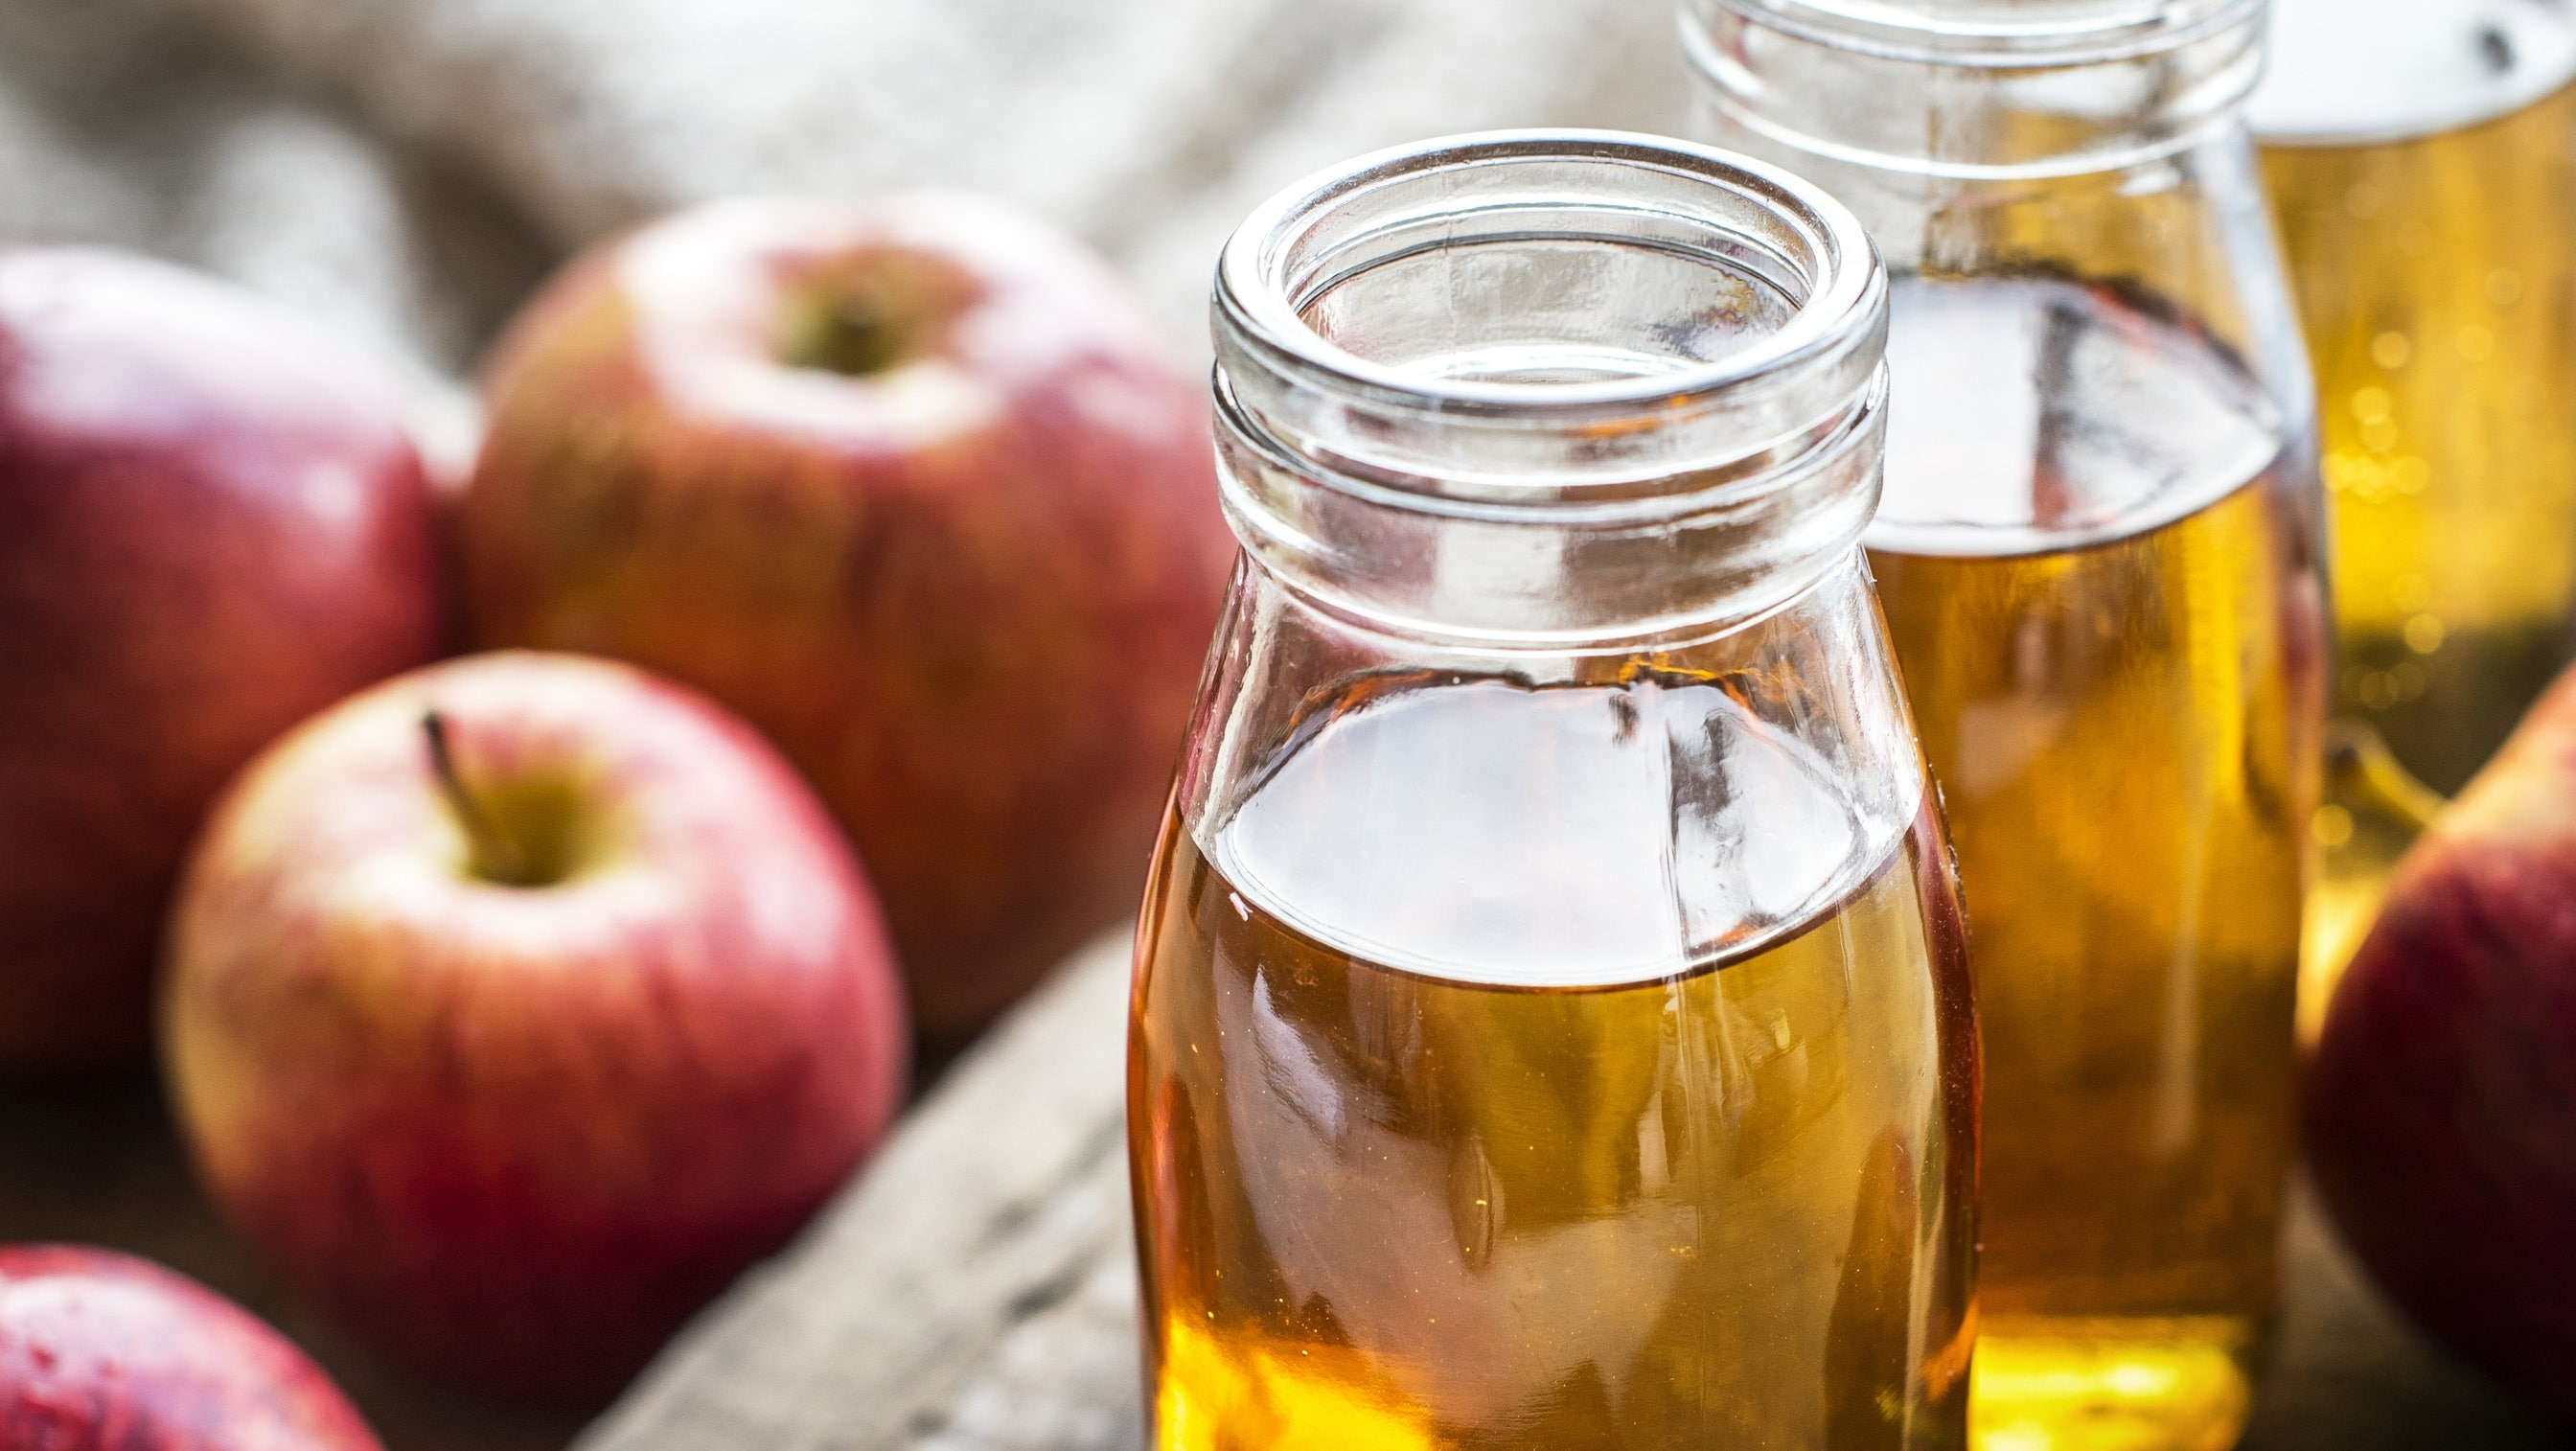 acne scars can be improved with glass jars of apple cider vinegar, next to an array of apples.